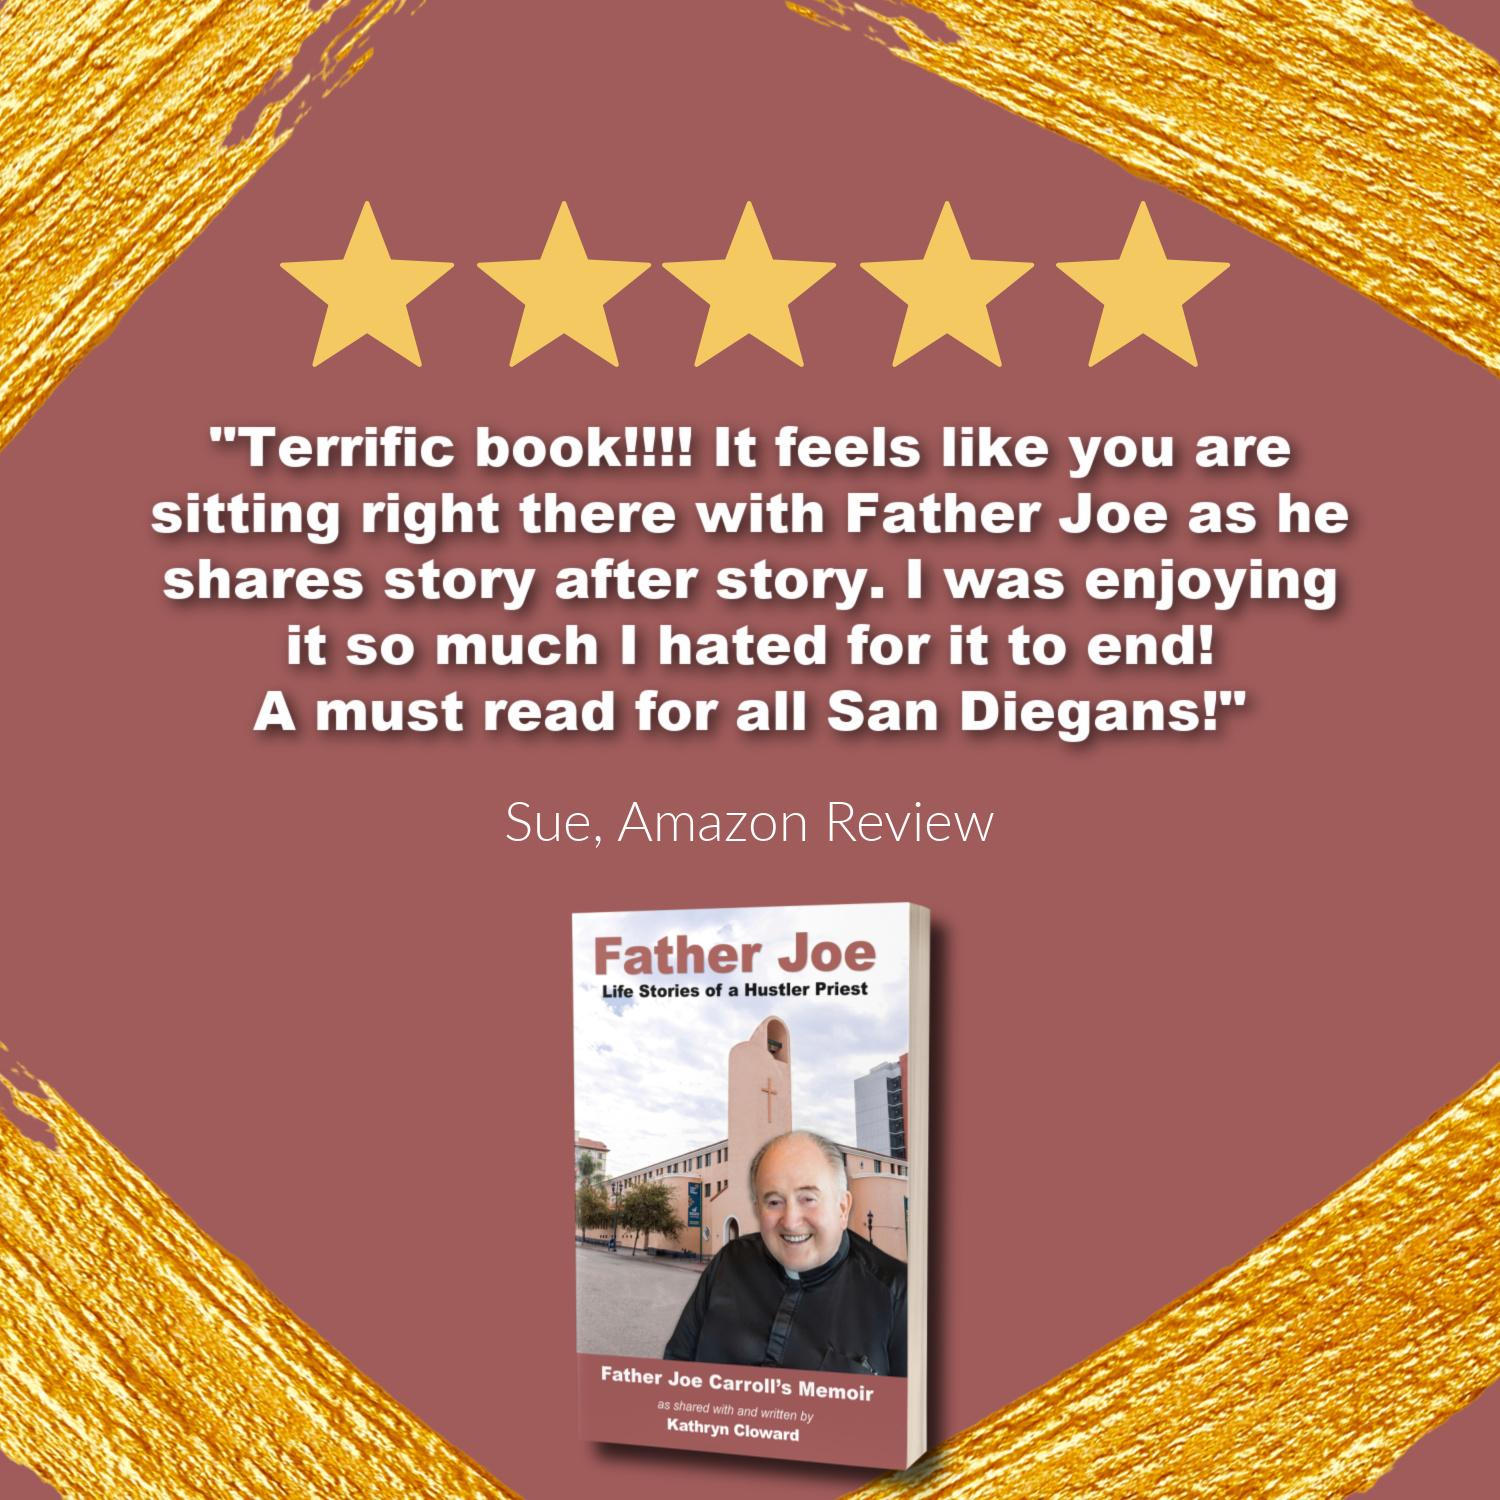 Father Joe Life Stories of a hustler priest Amazon review by Kathryn Cloward